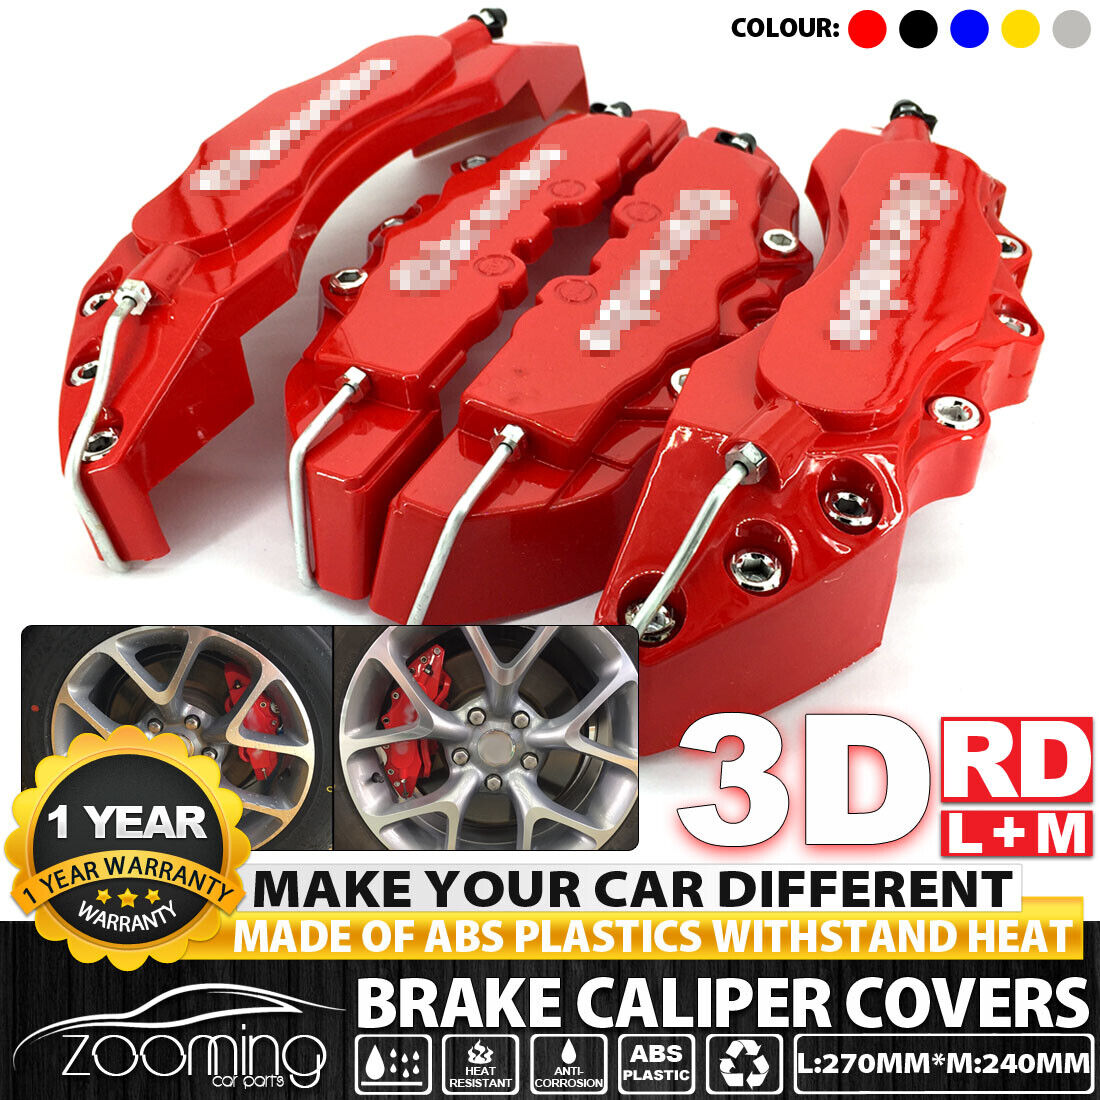 6x BK Style 3D Brake Caliper Cover Disc Universal Car L+M+S Front Rear Kit LW01